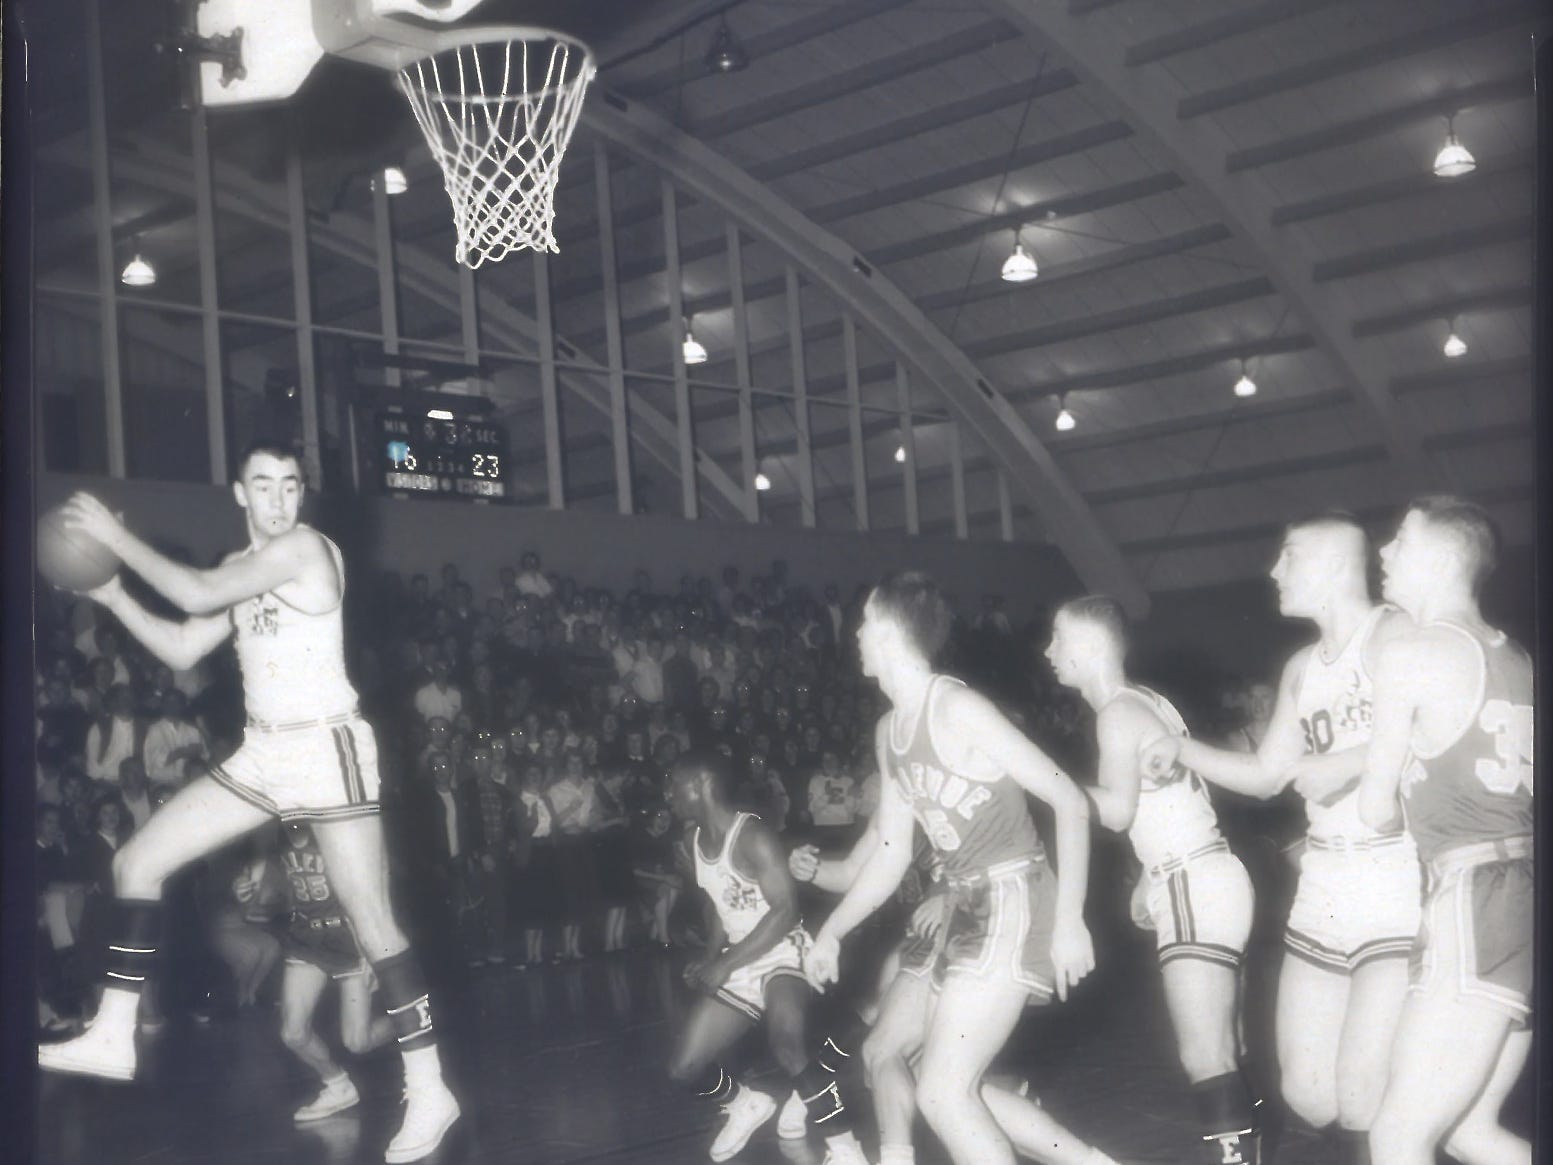 12/06/60